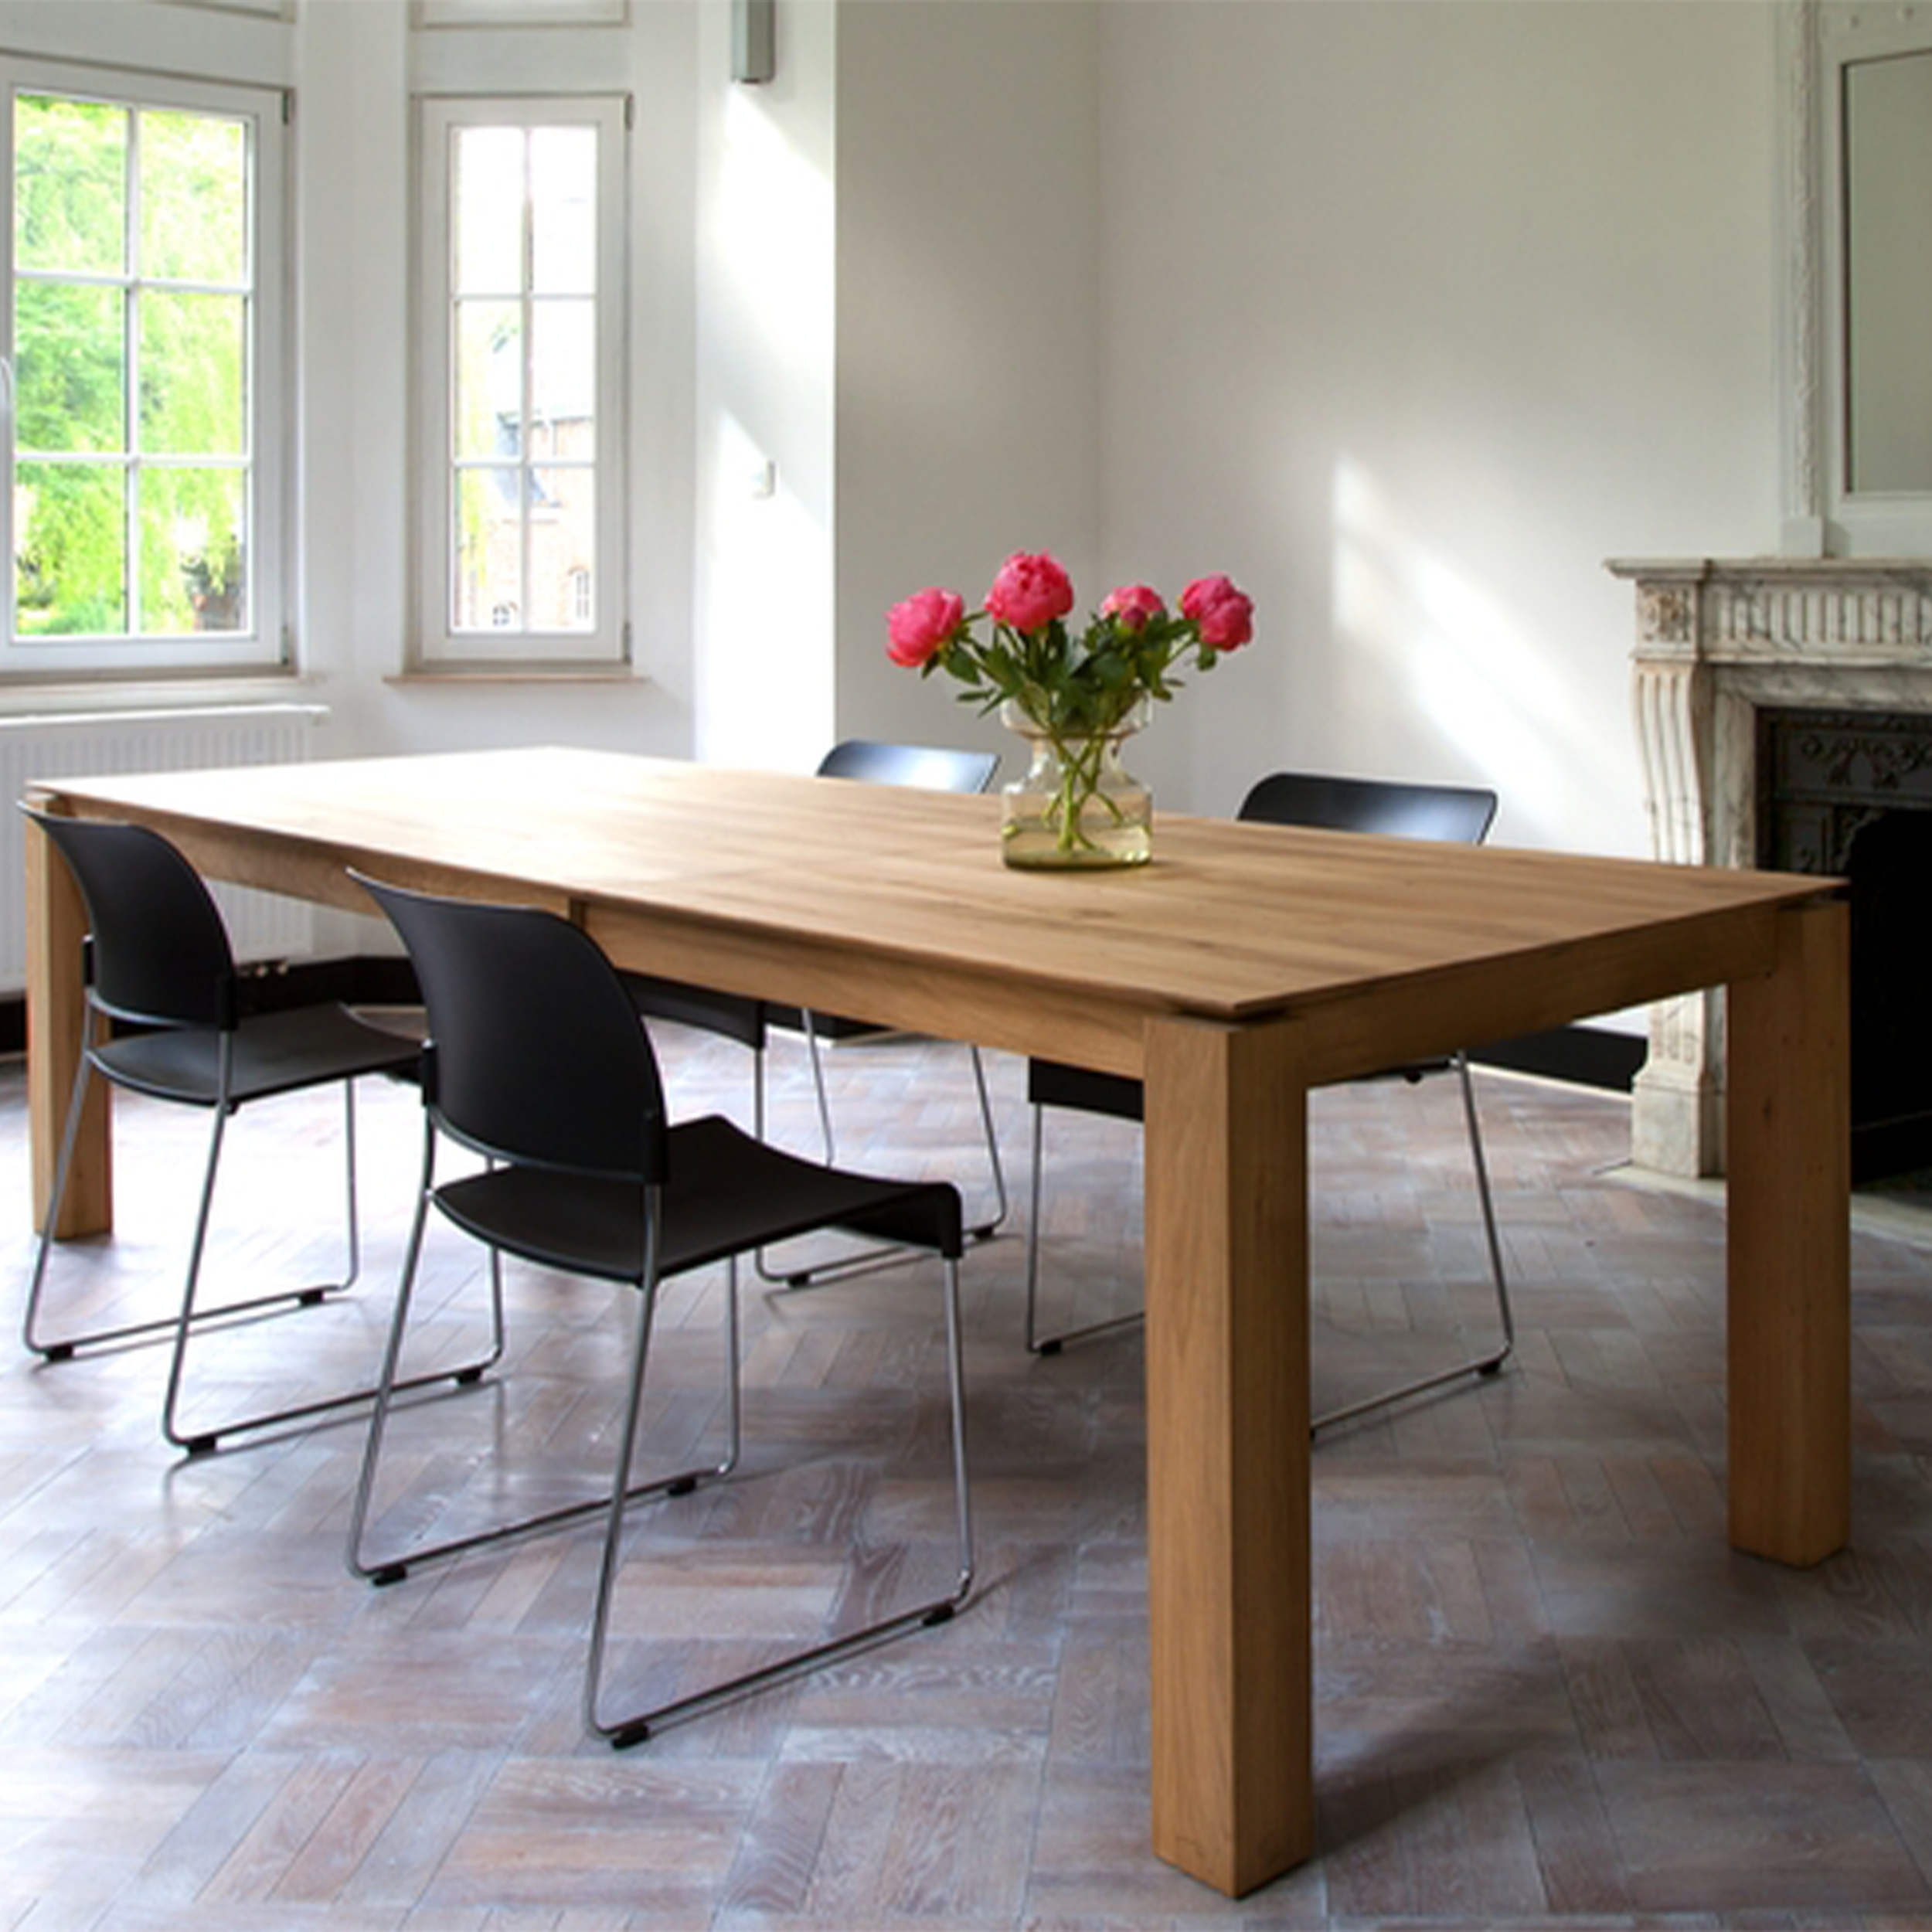 51943-Oak-Slice-extendable-dining-table-2.jpg.png